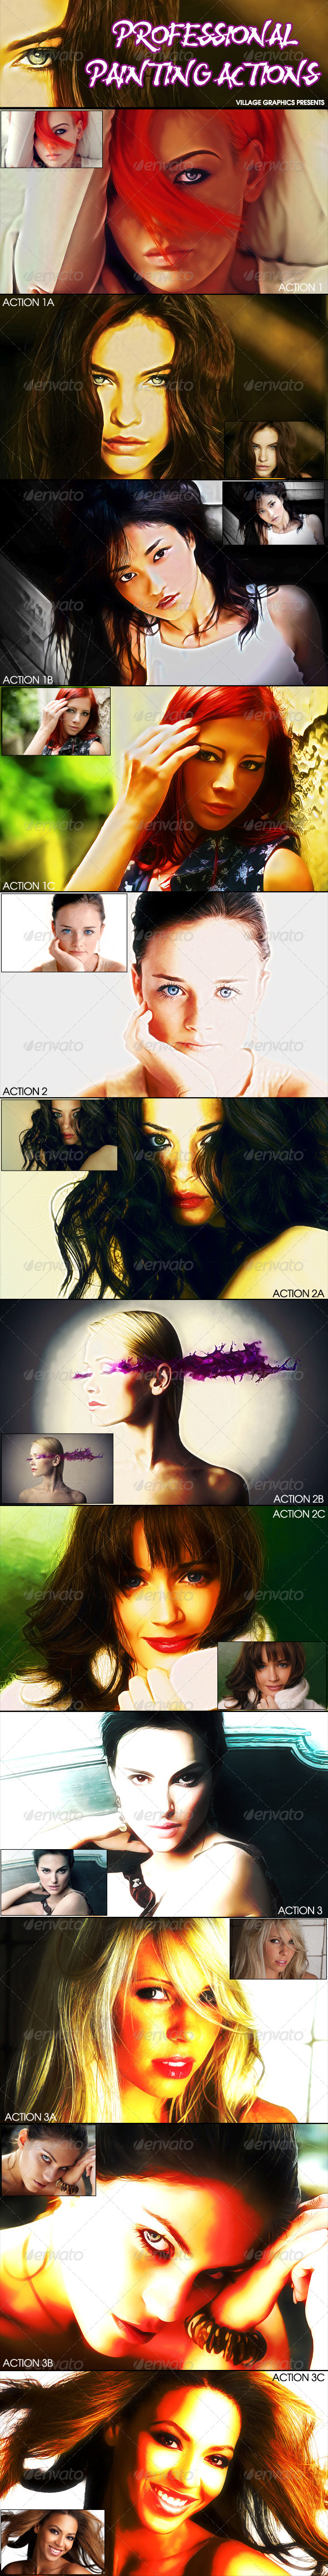 GraphicRiver Professional Painting Actions 7094644